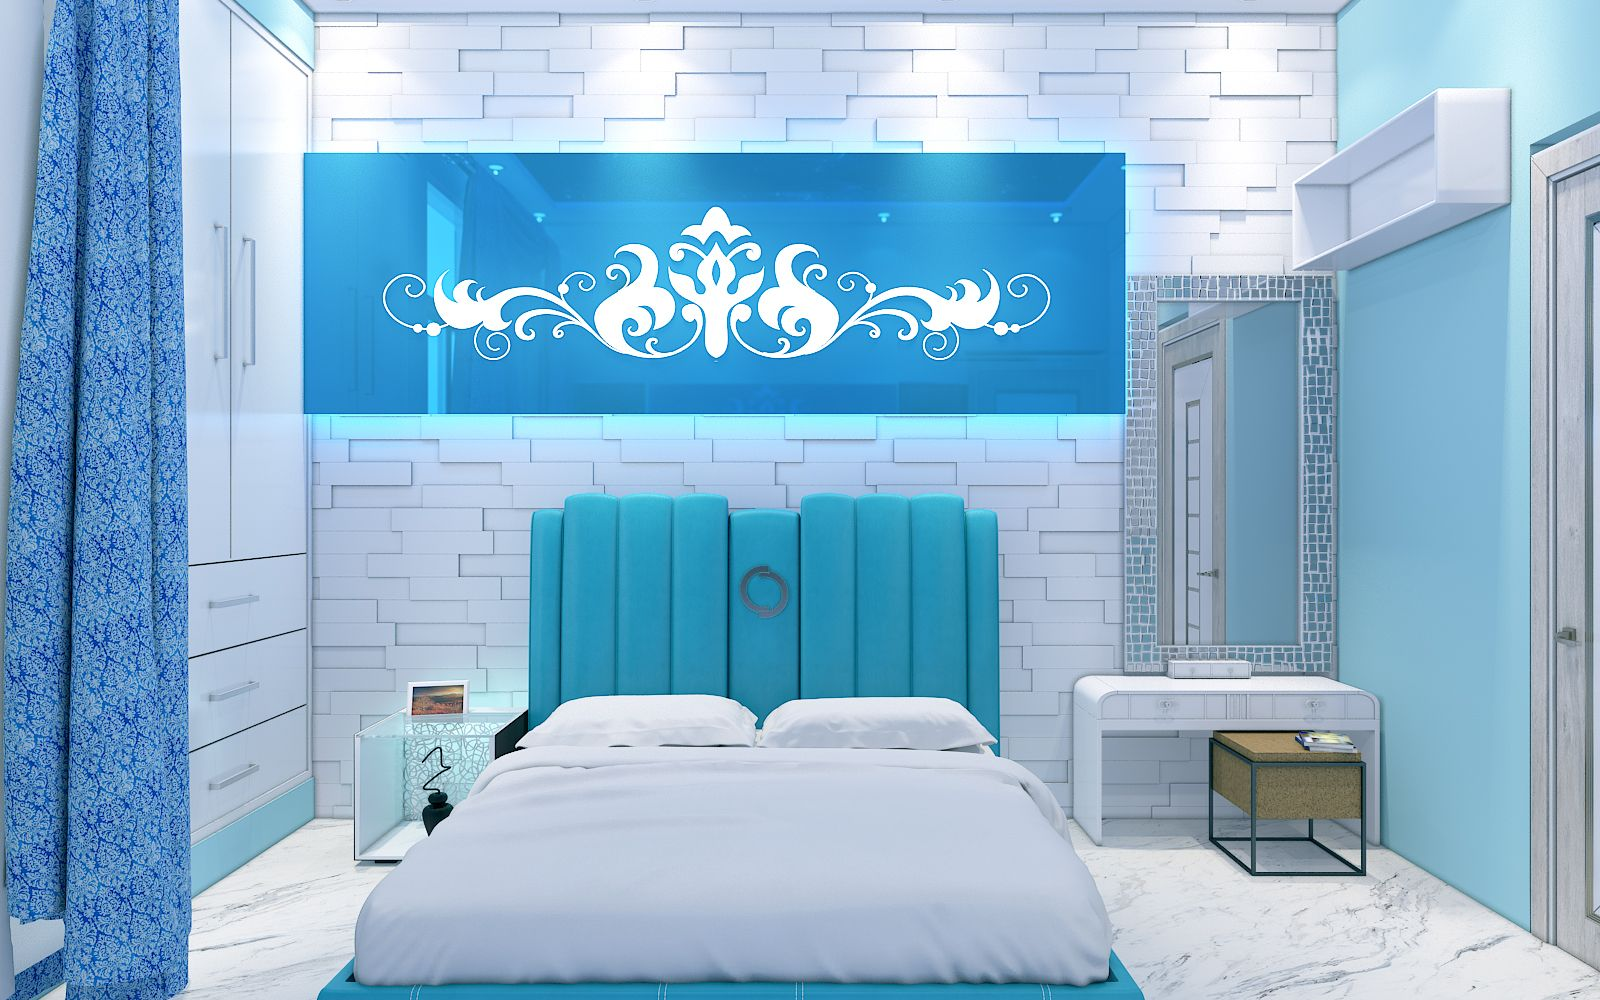 Bring Yagotimber S Aqua Bedroom And Make Your Interior Looks Exquisite Book Free Design Consultation Give Us Aqua Bedrooms Space Interiors Interior Design